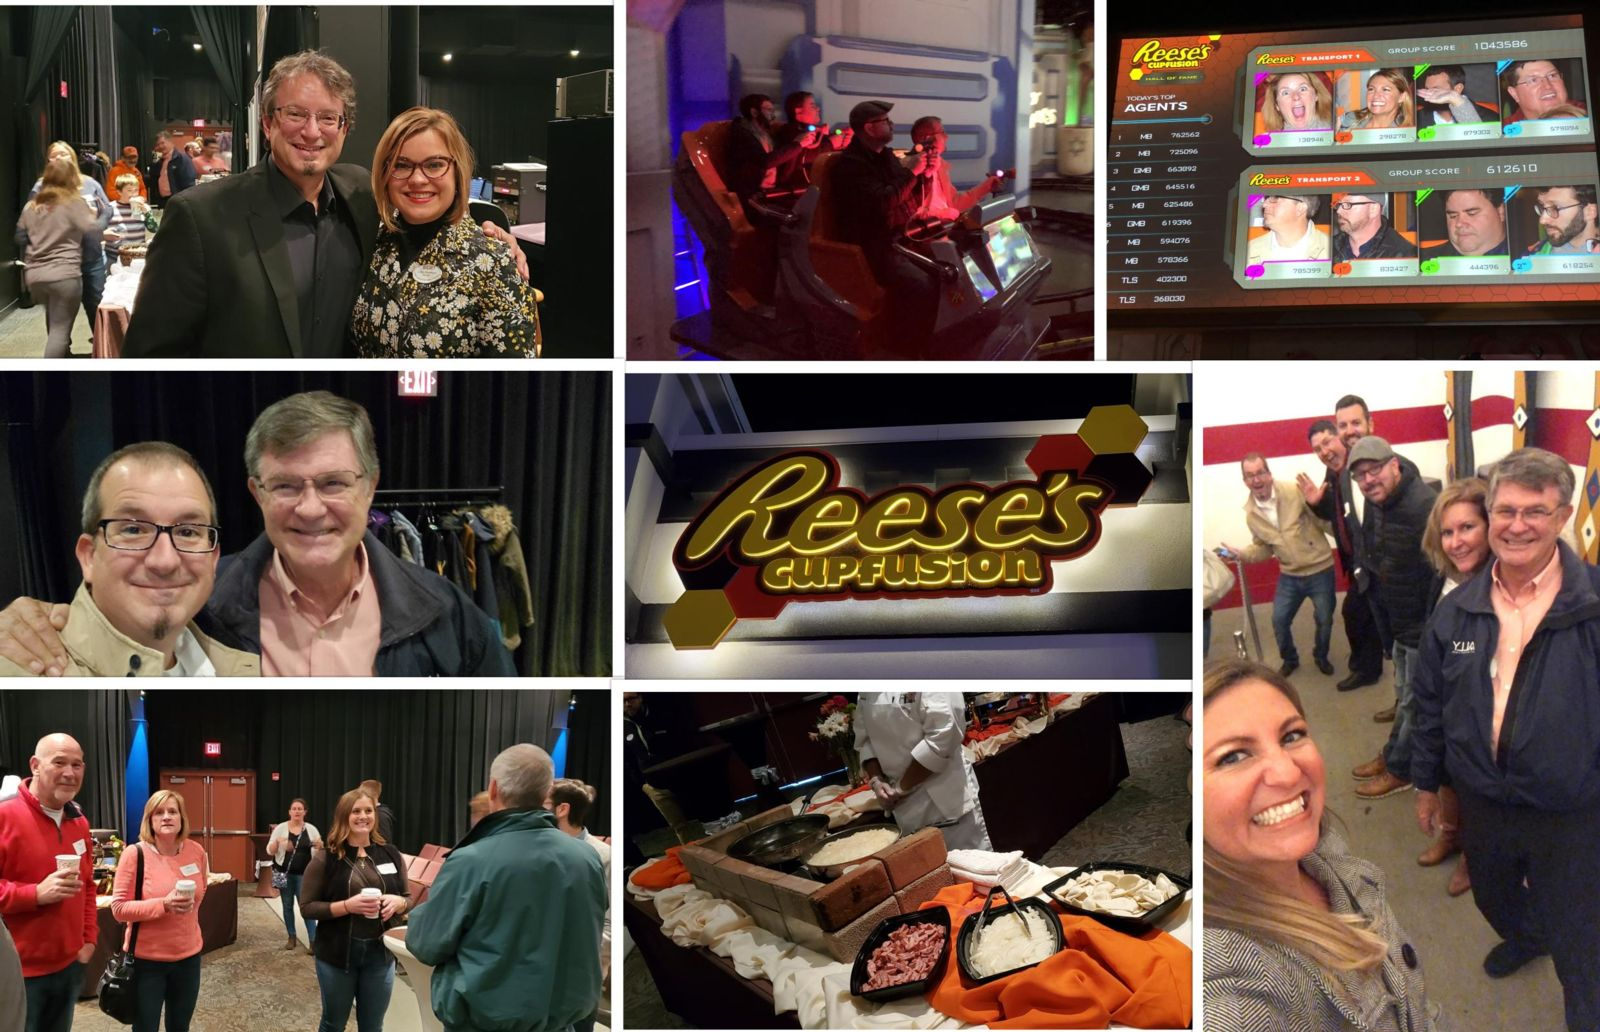 A sweet TEA gathering at Reese's Cupfusion? at Hersheypark?, November 2019